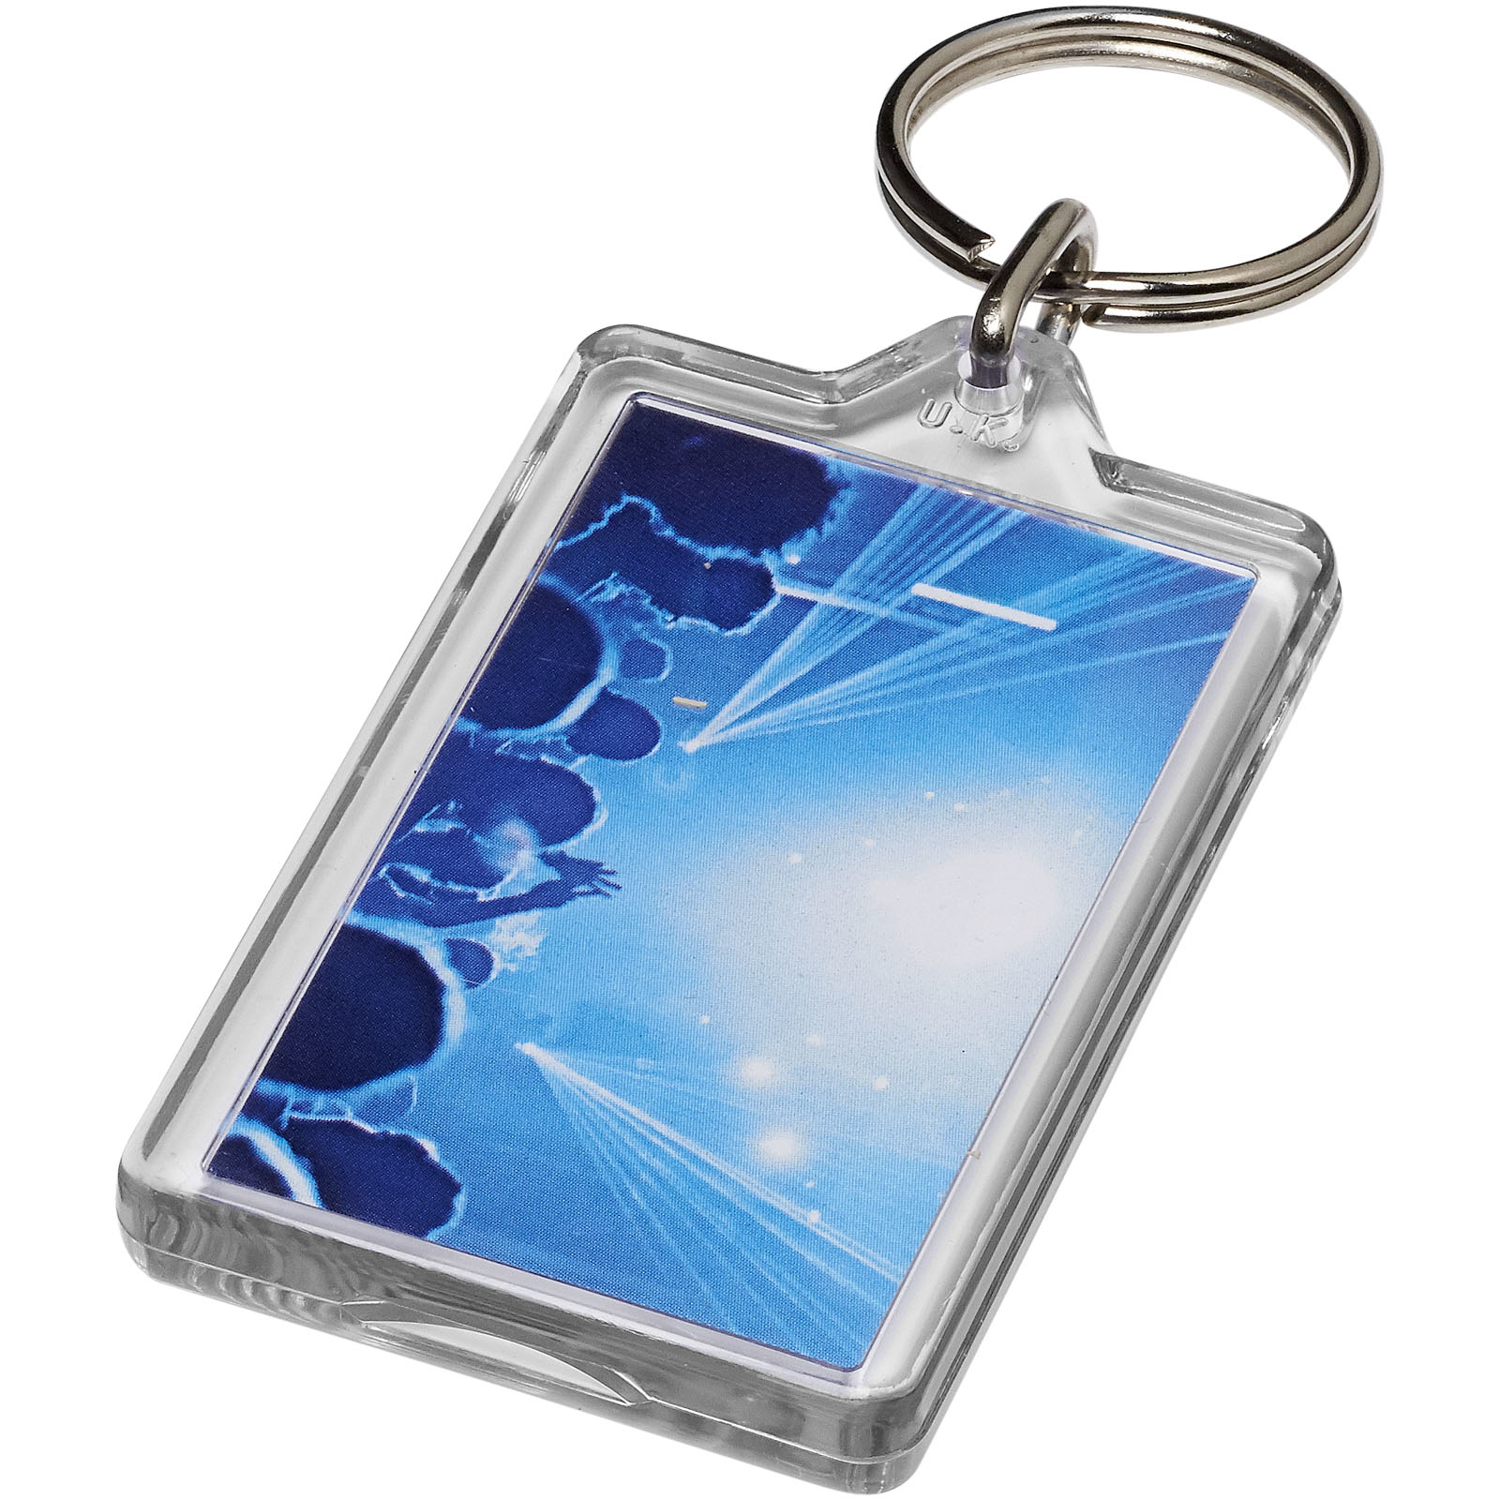 Luken G1 Reopenable Keychain